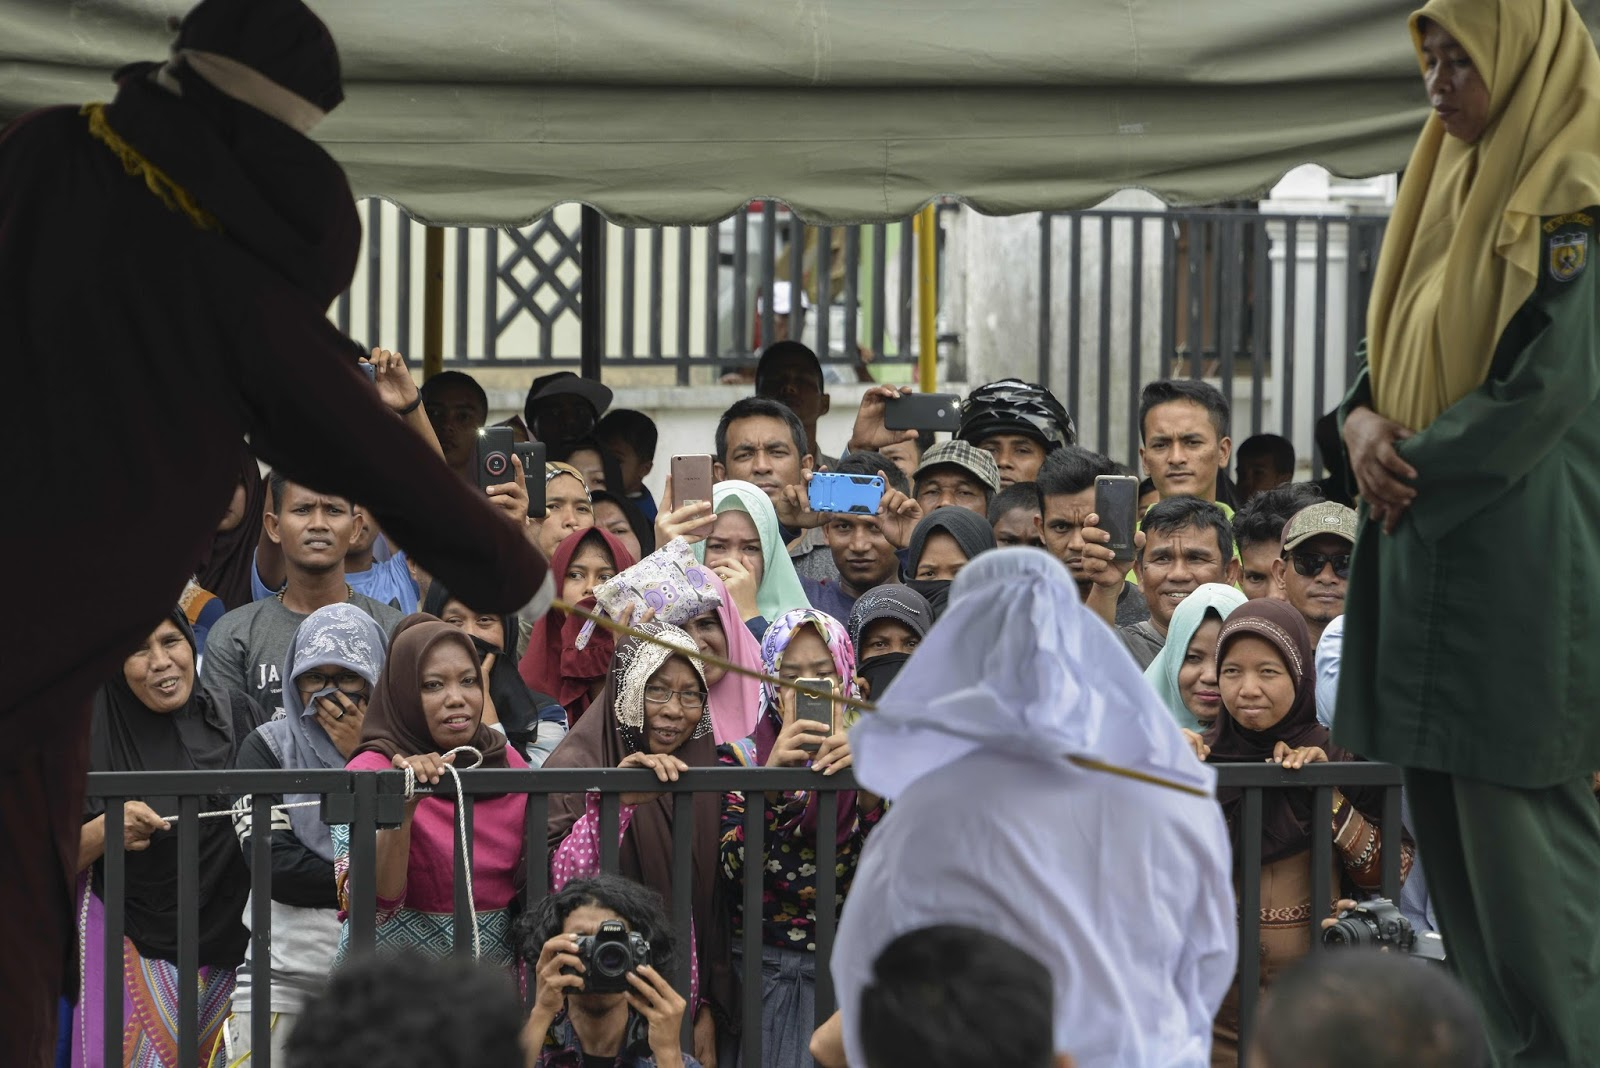 indonesian christians flogged playing kids video game